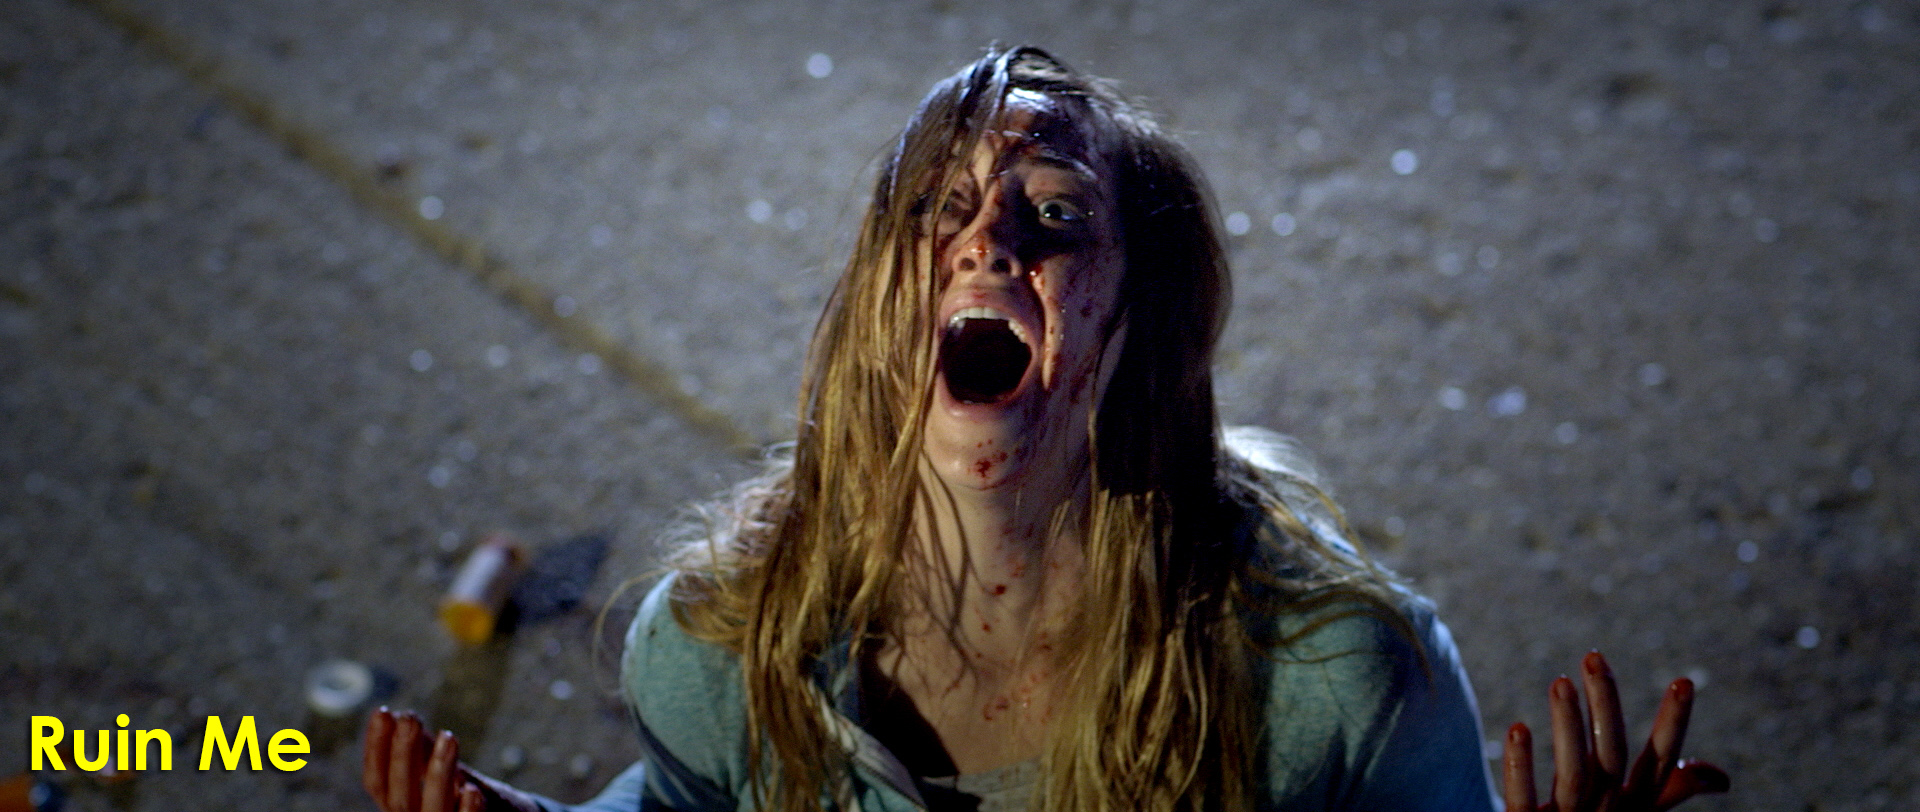 Get Creeped Out at the 7th Annual NOLA Horror Film Fest